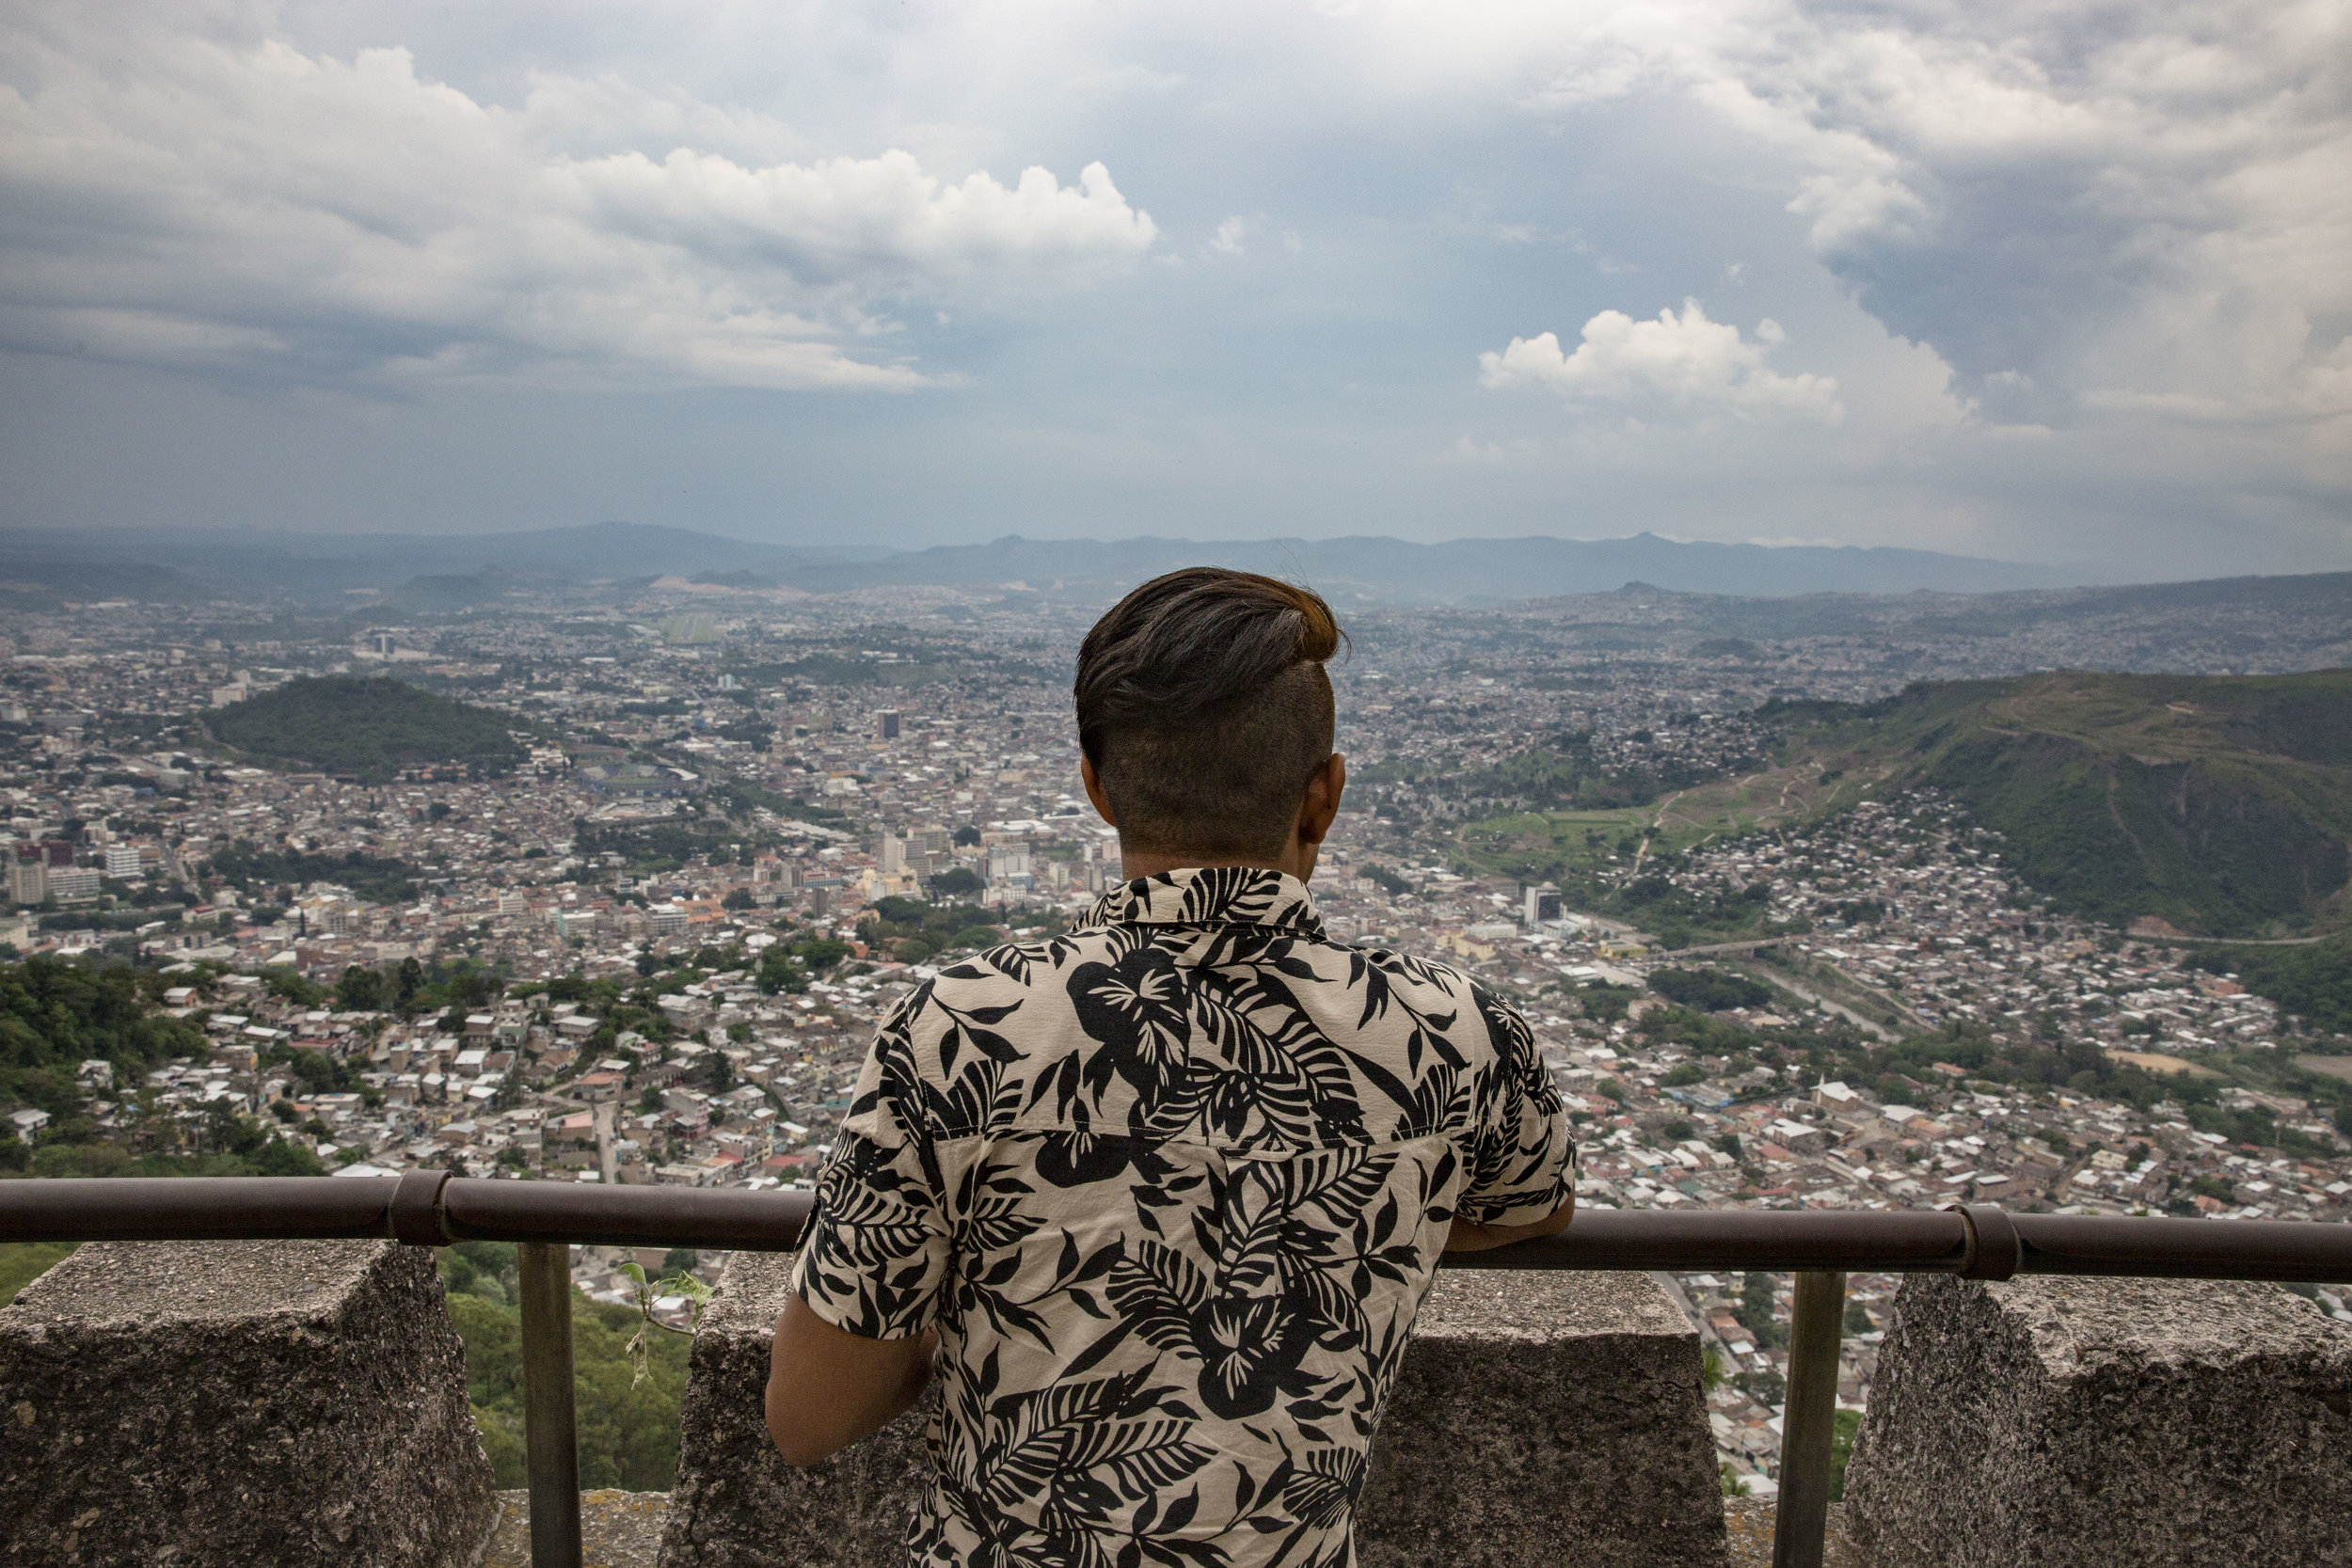 Darwin overlooking Tegucigalpa, where he lives. Darwin is not safe, he has been threaten by the same gang that murdered his brother.